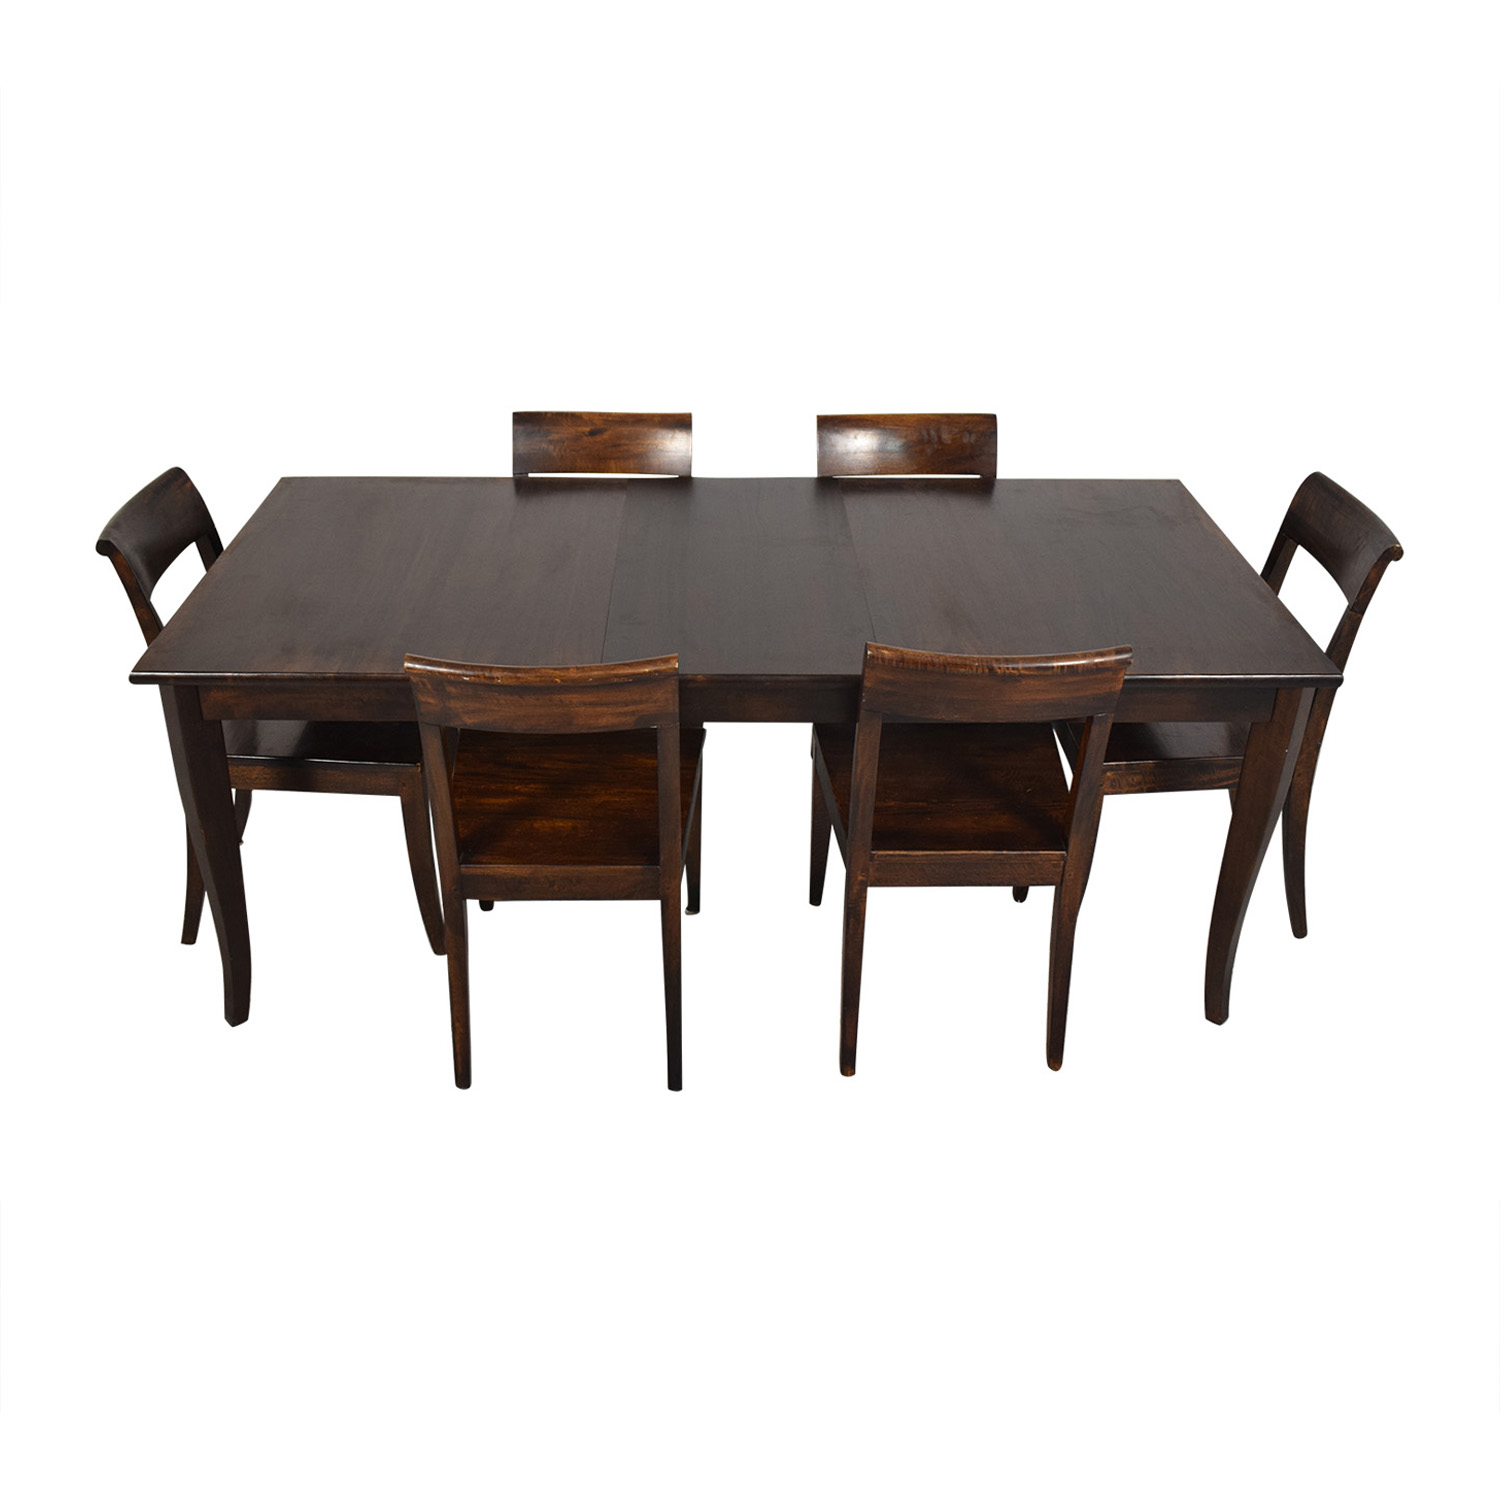 shop Crate & Barrel Cabria Table Dining Set Crate & Barrel Dining Sets